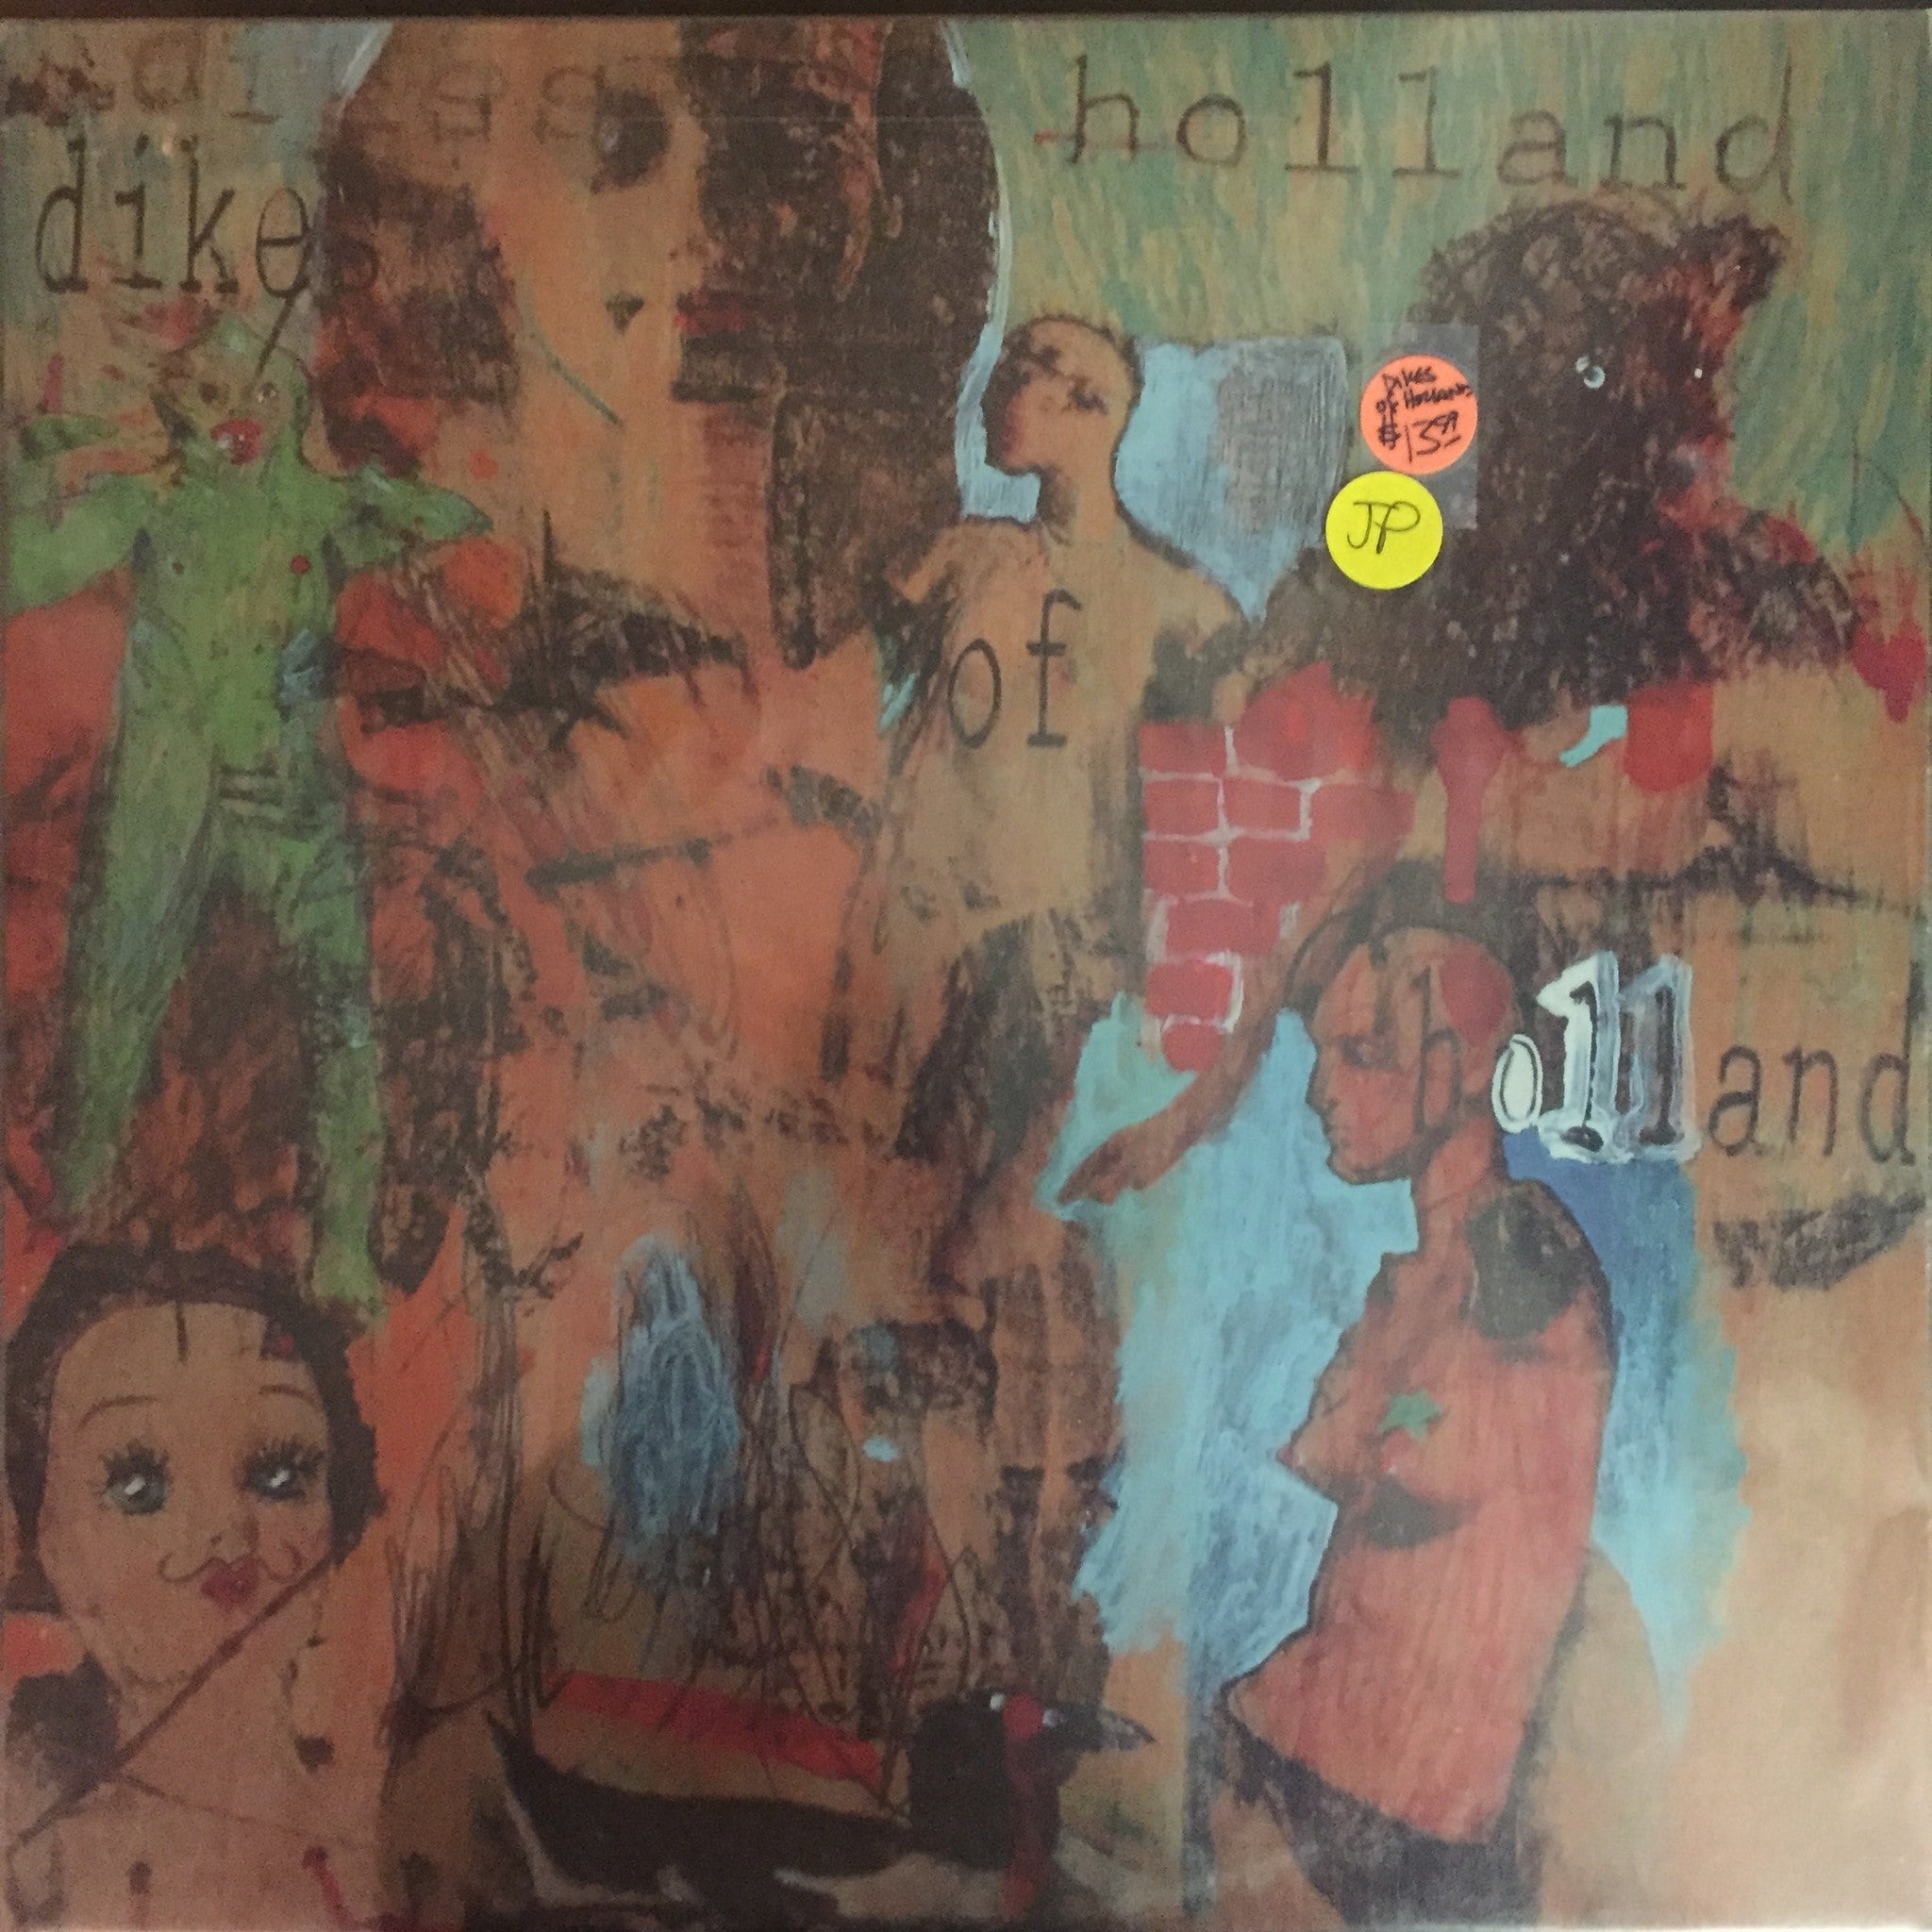 Dikes of Holland - Dikes of Holland LP (SR002-02 - New and Sealed)